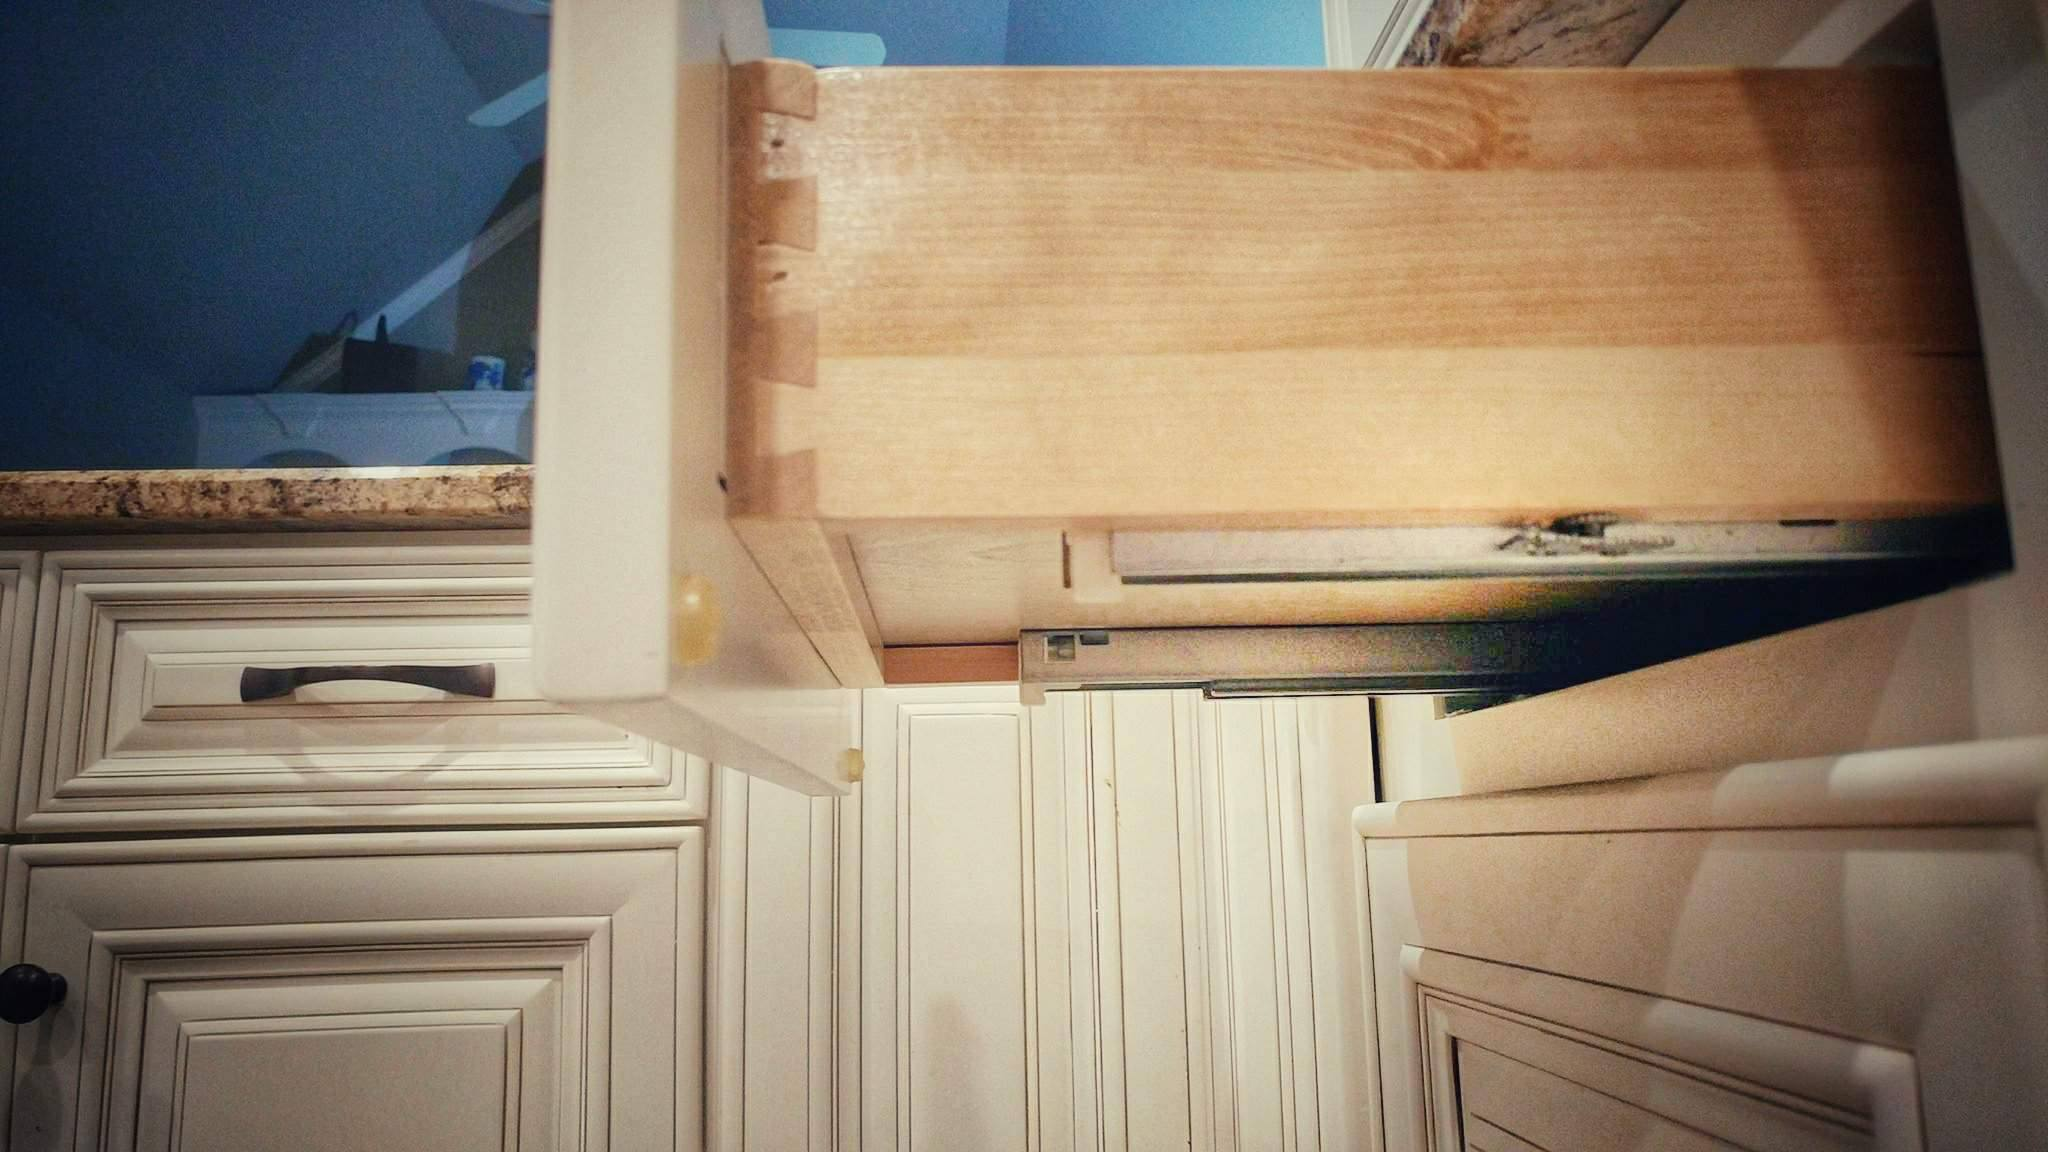 Benefits Of Soft Closures For Drawers And Cabinets